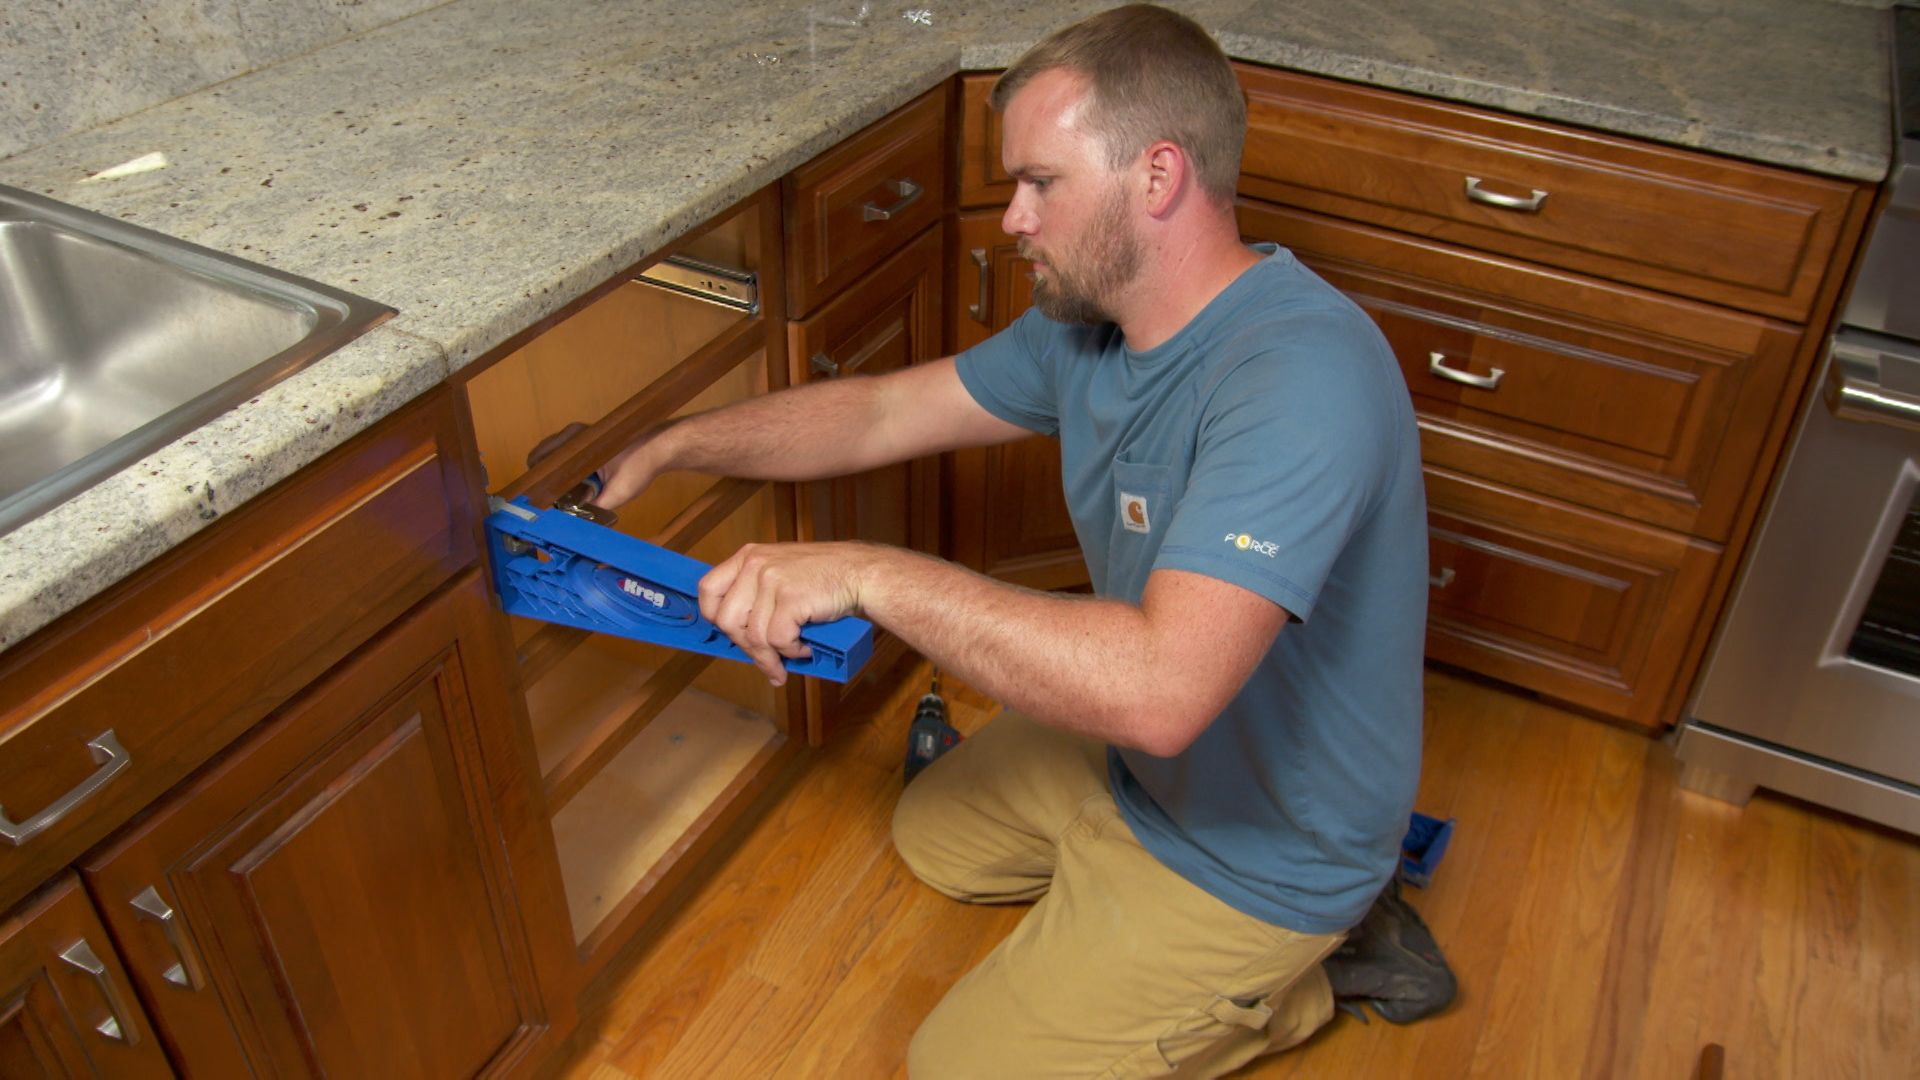 Cabinet Upgrade Secret Garden Ask Toh Painting Kitchen Cabinets Old House Home Remodeling